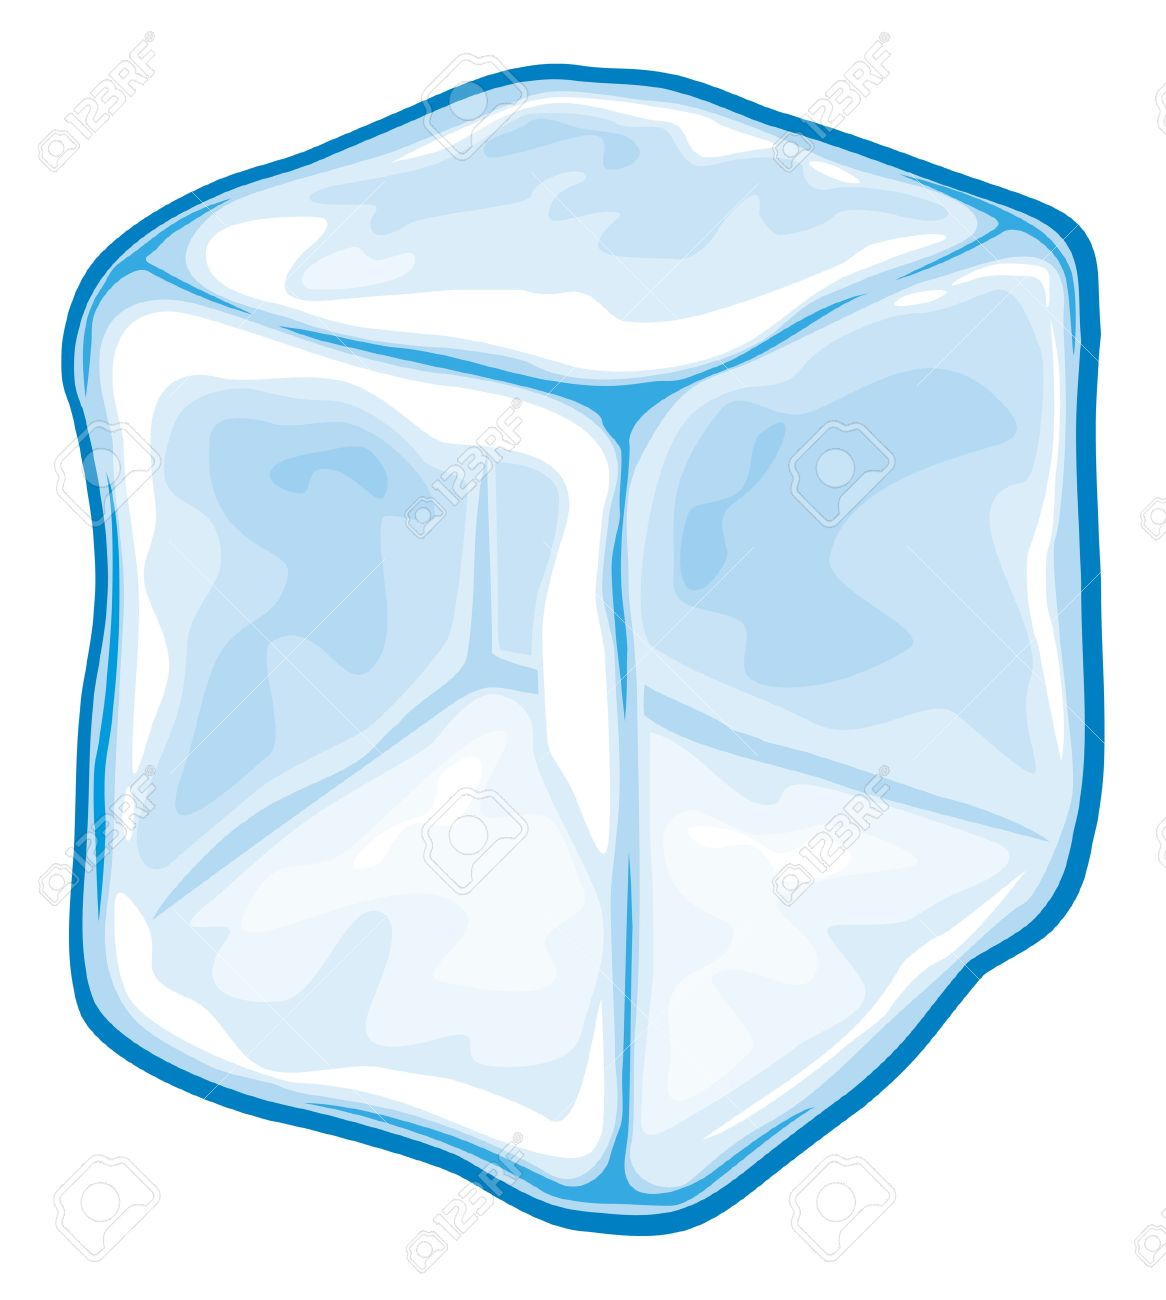 2 ice cubes clipart graphic freeuse stock Ice Cubes Clipart | Free download best Ice Cubes Clipart on ... graphic freeuse stock